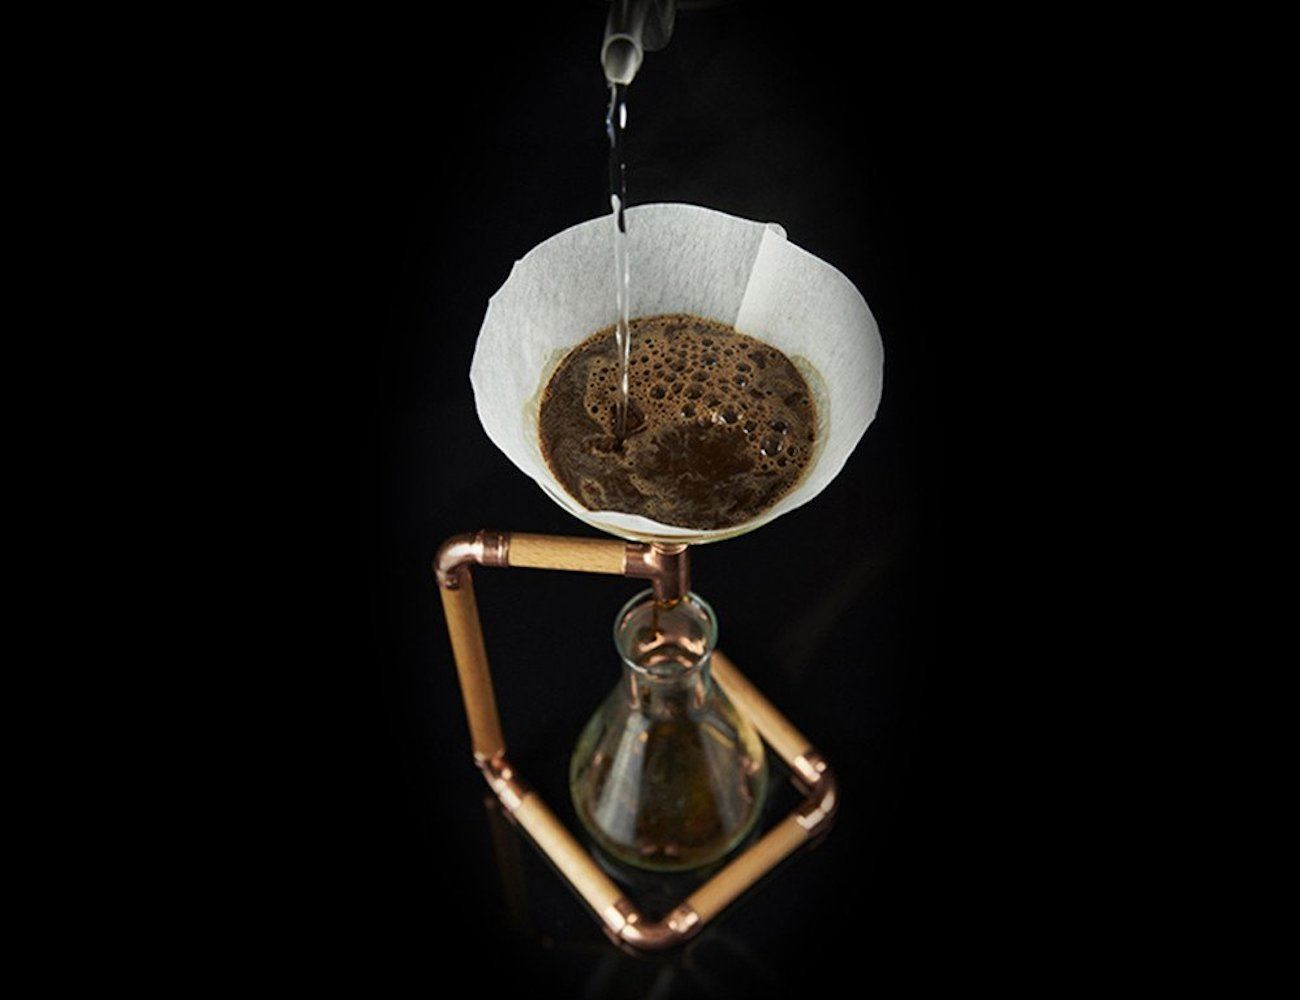 G-Drip Pour Over Coffee Maker